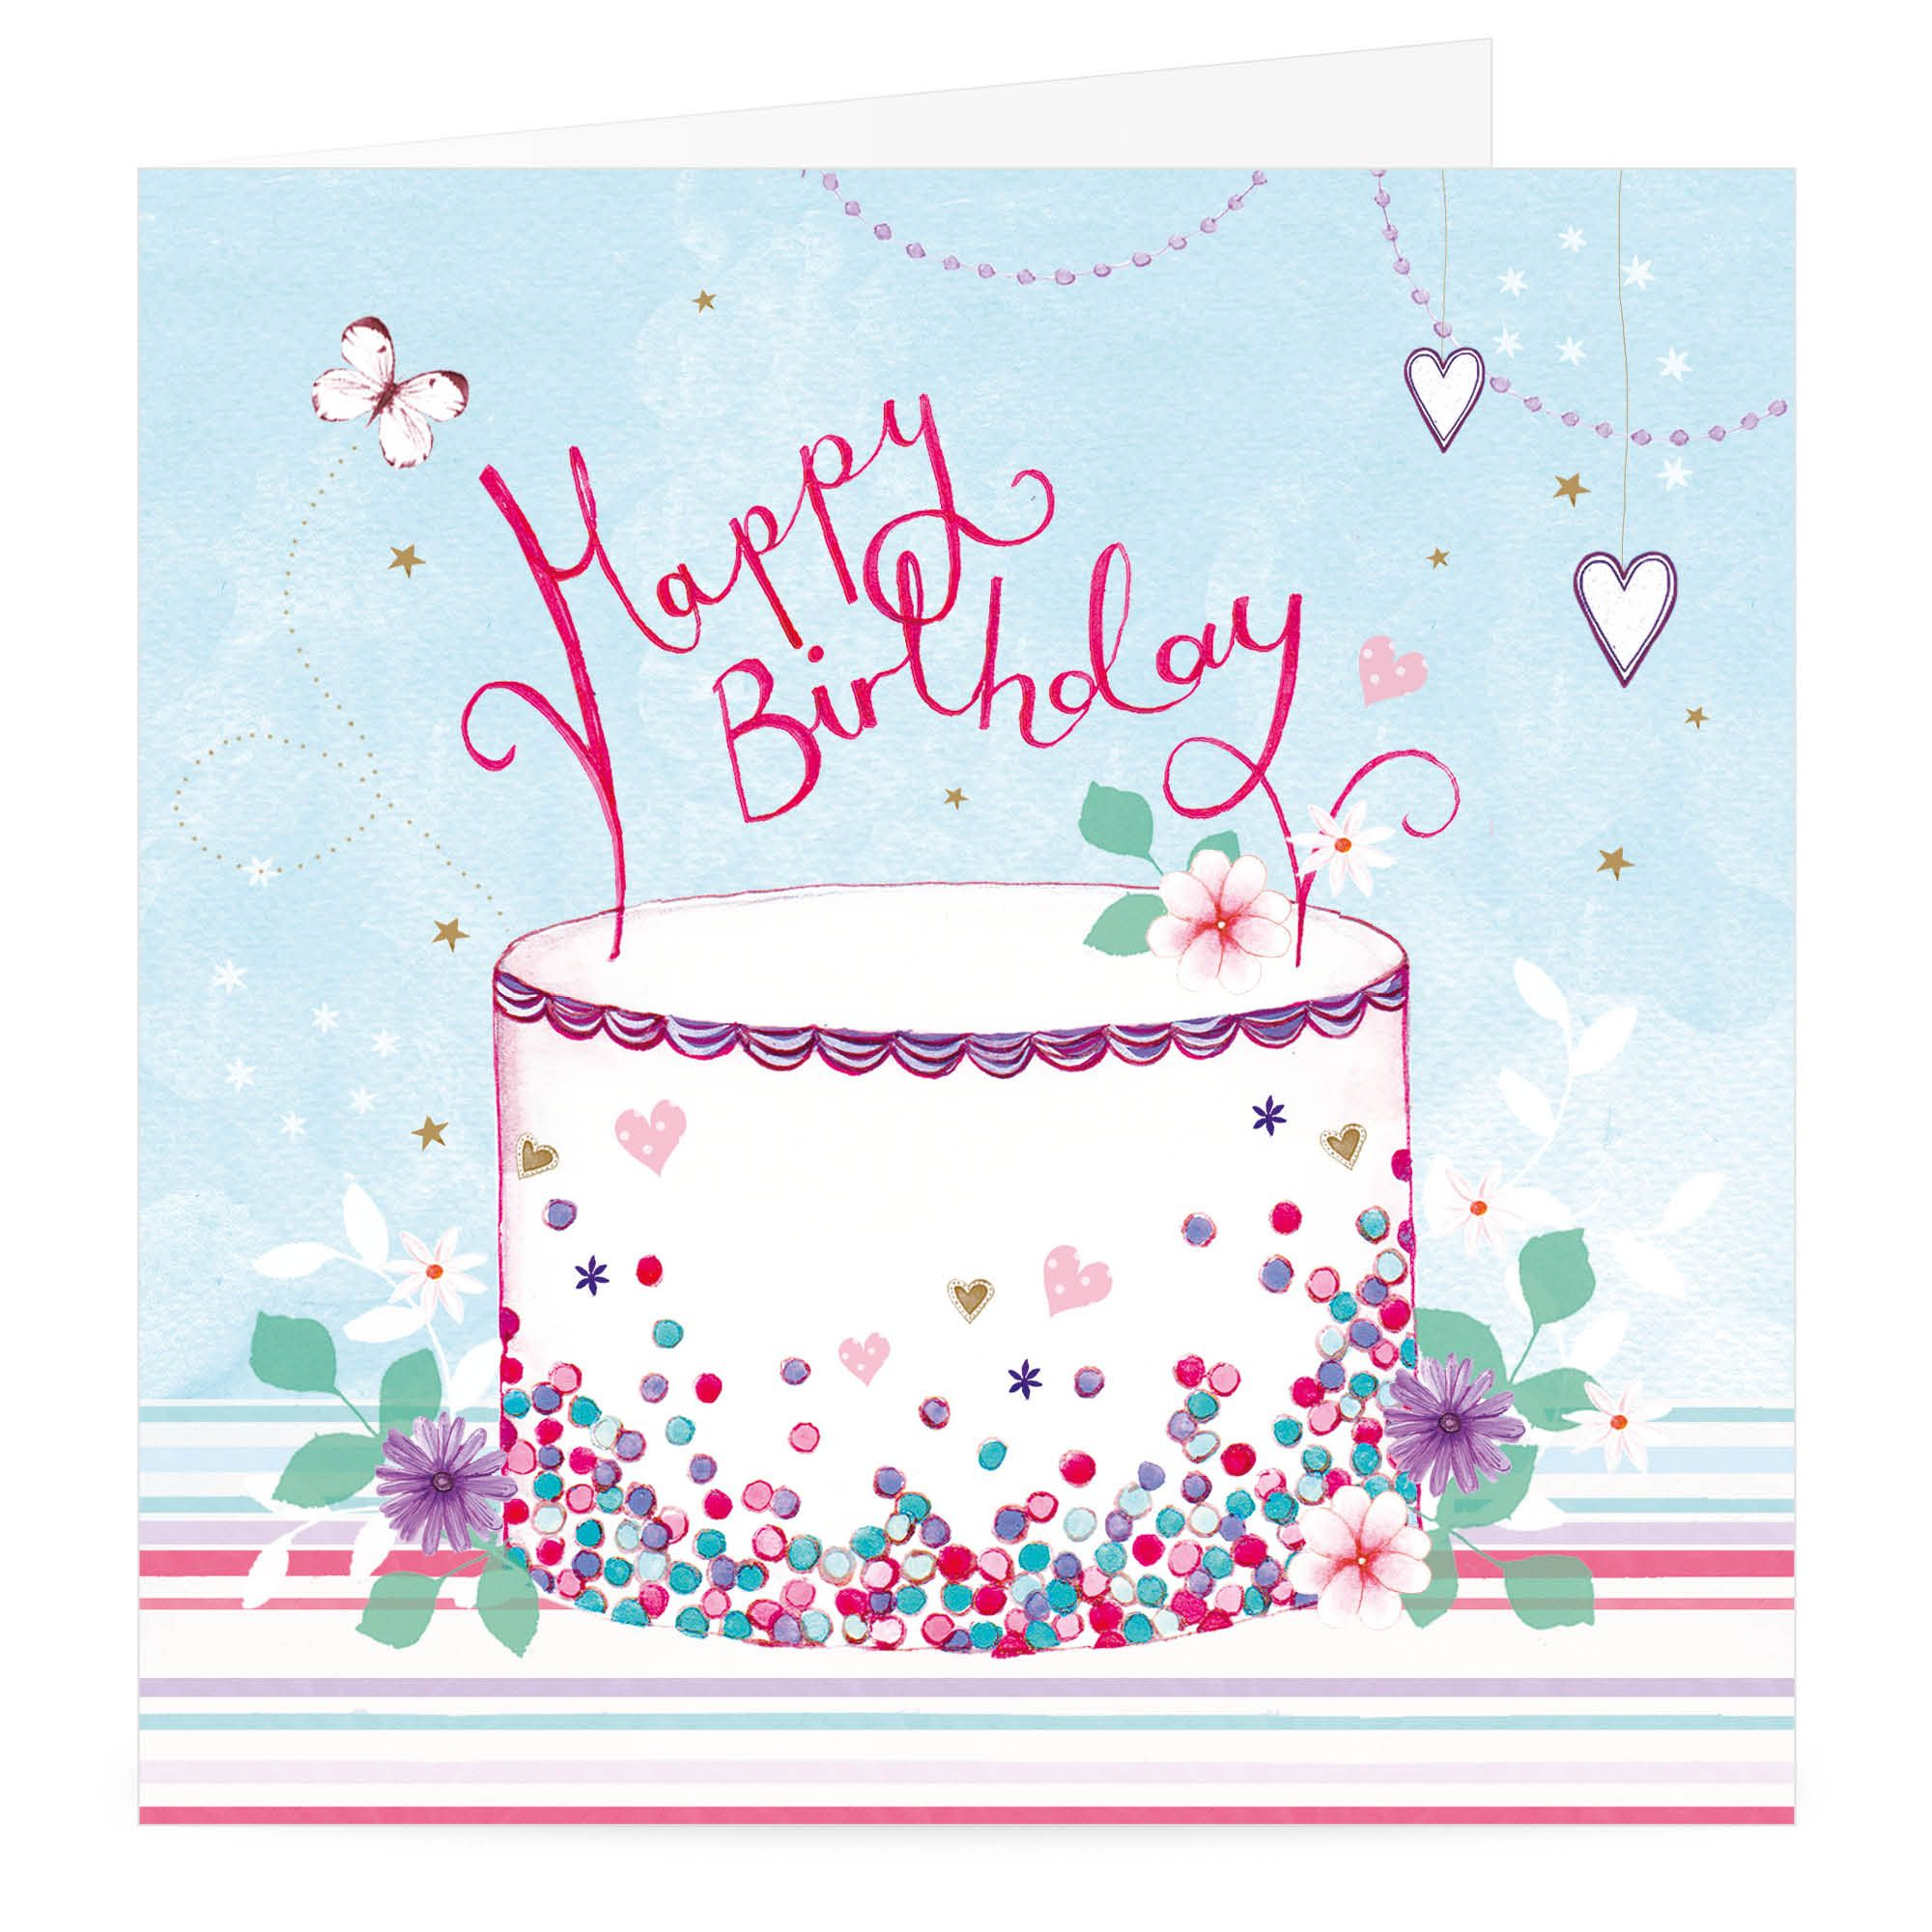 Hearts And Cake Happy Birthday Card